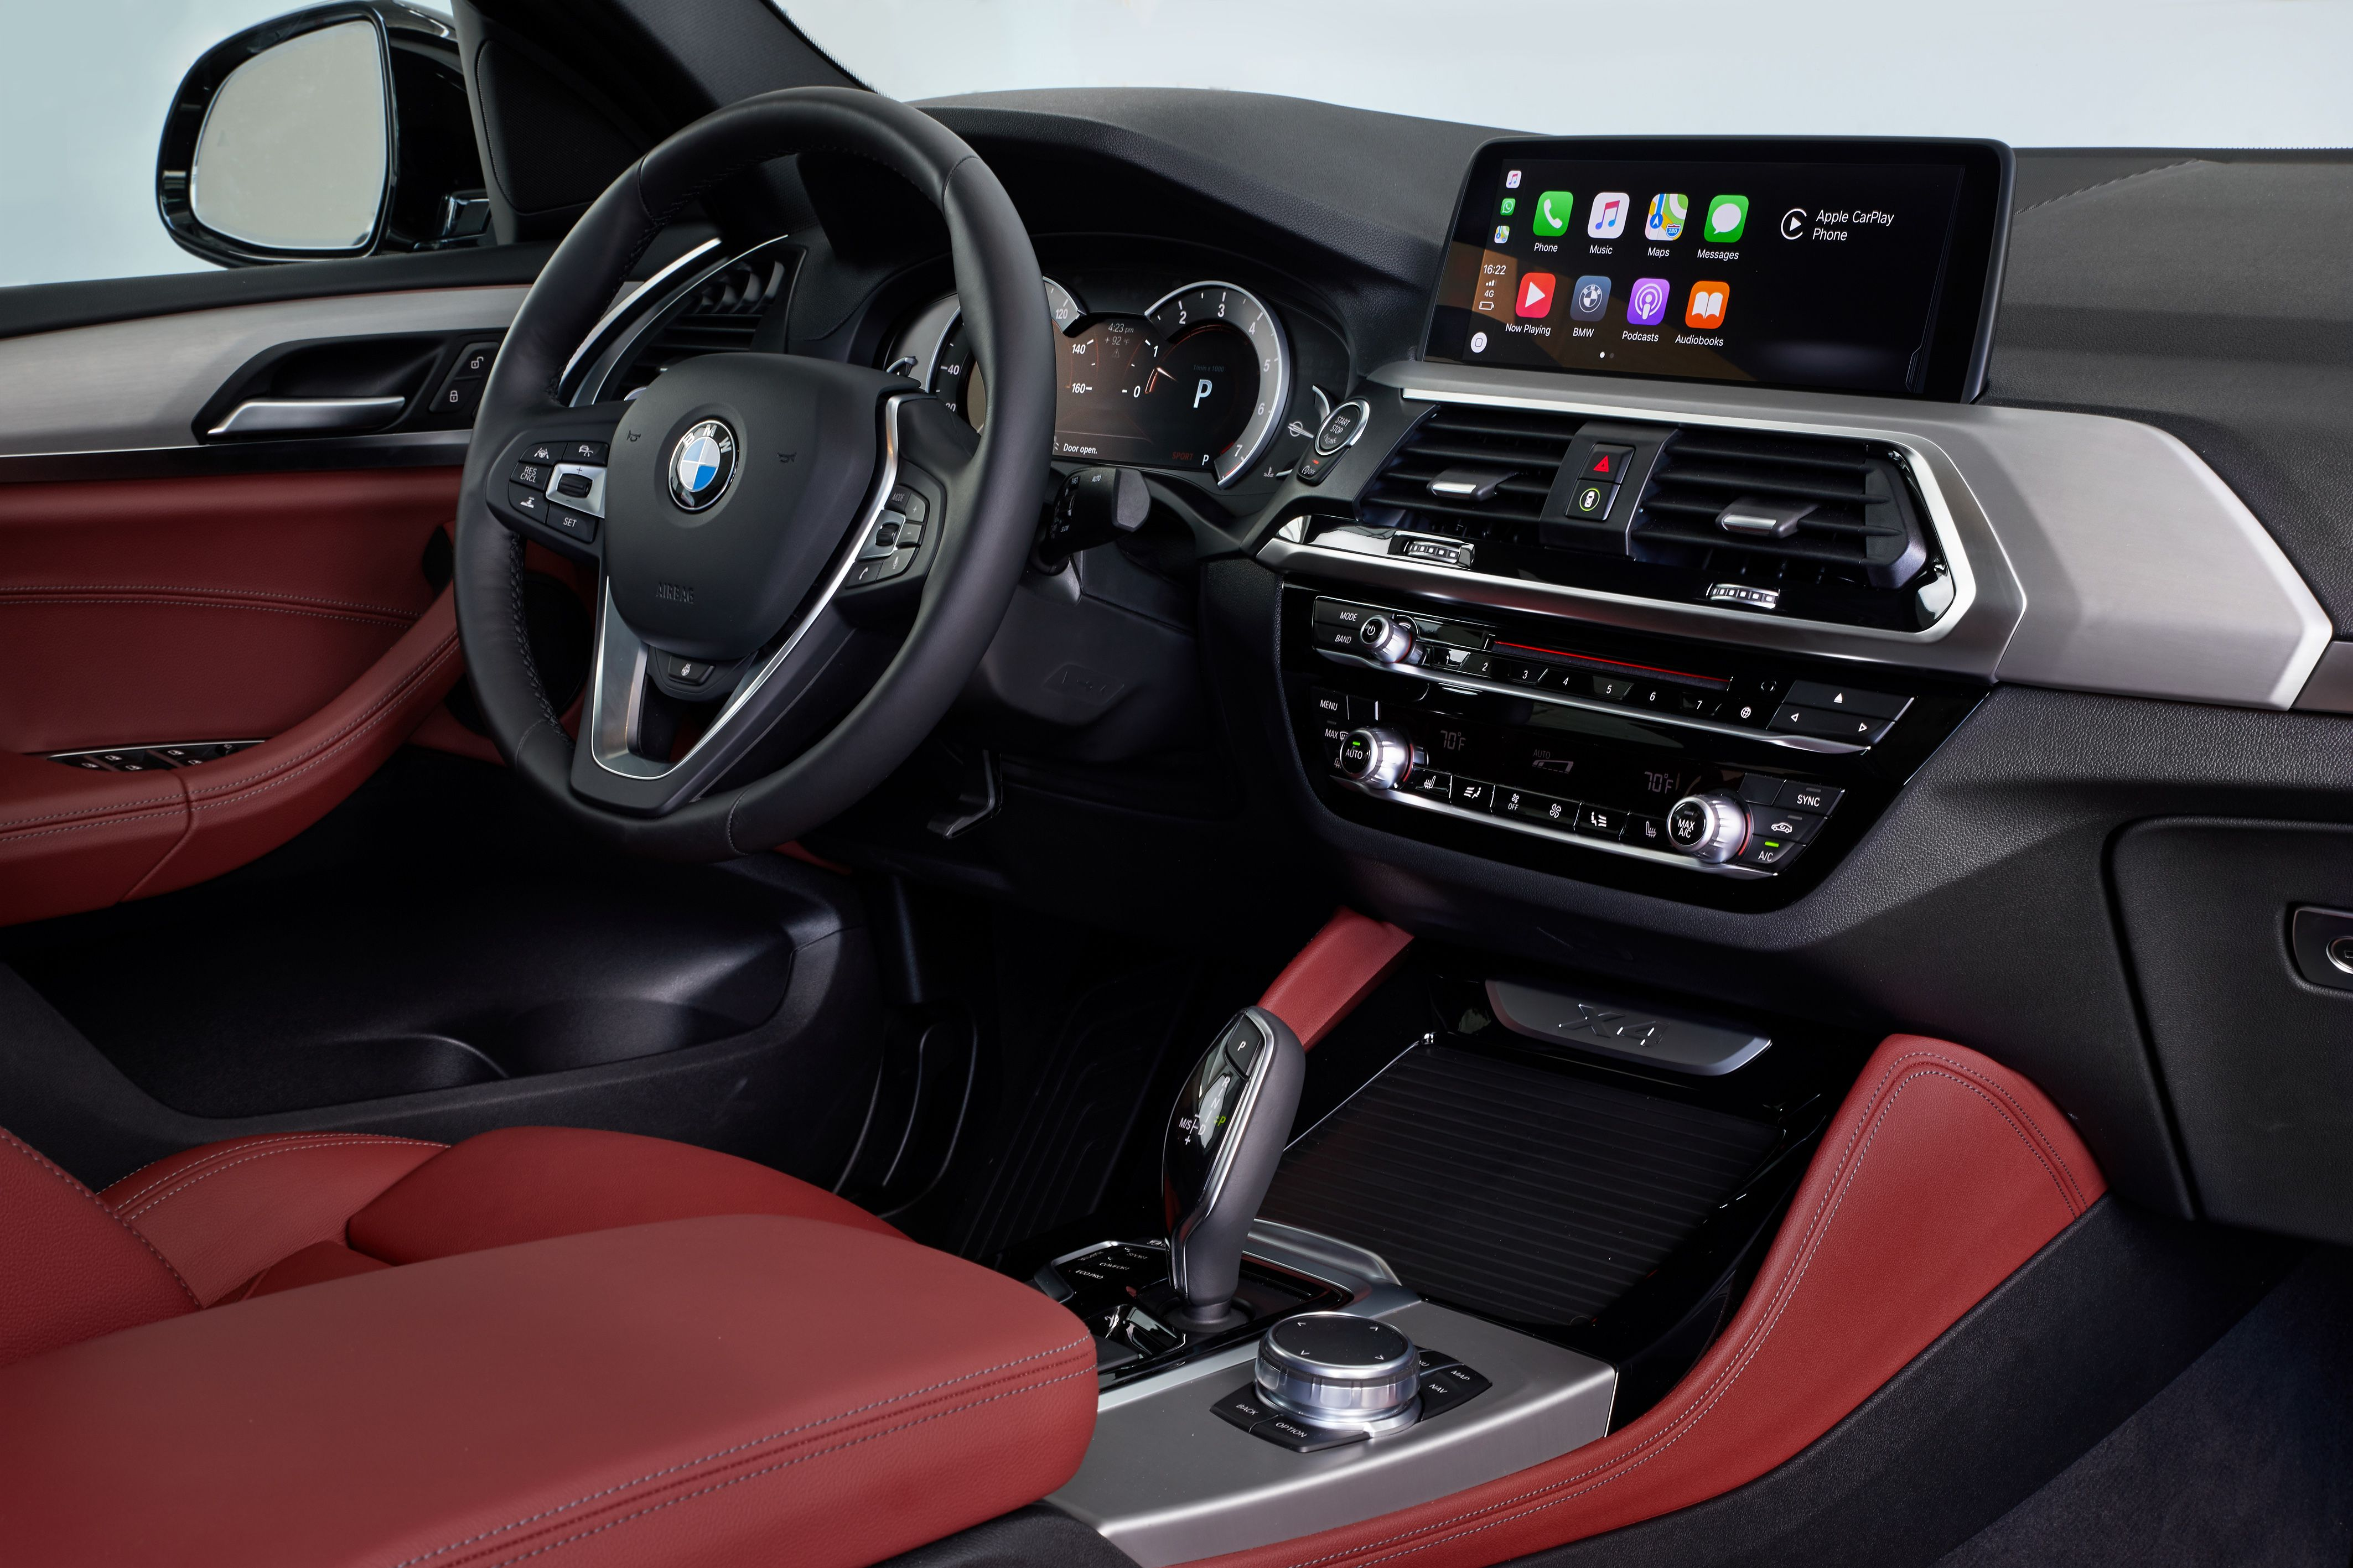 Pin on cars carssss bmw x4 interior pictures - small